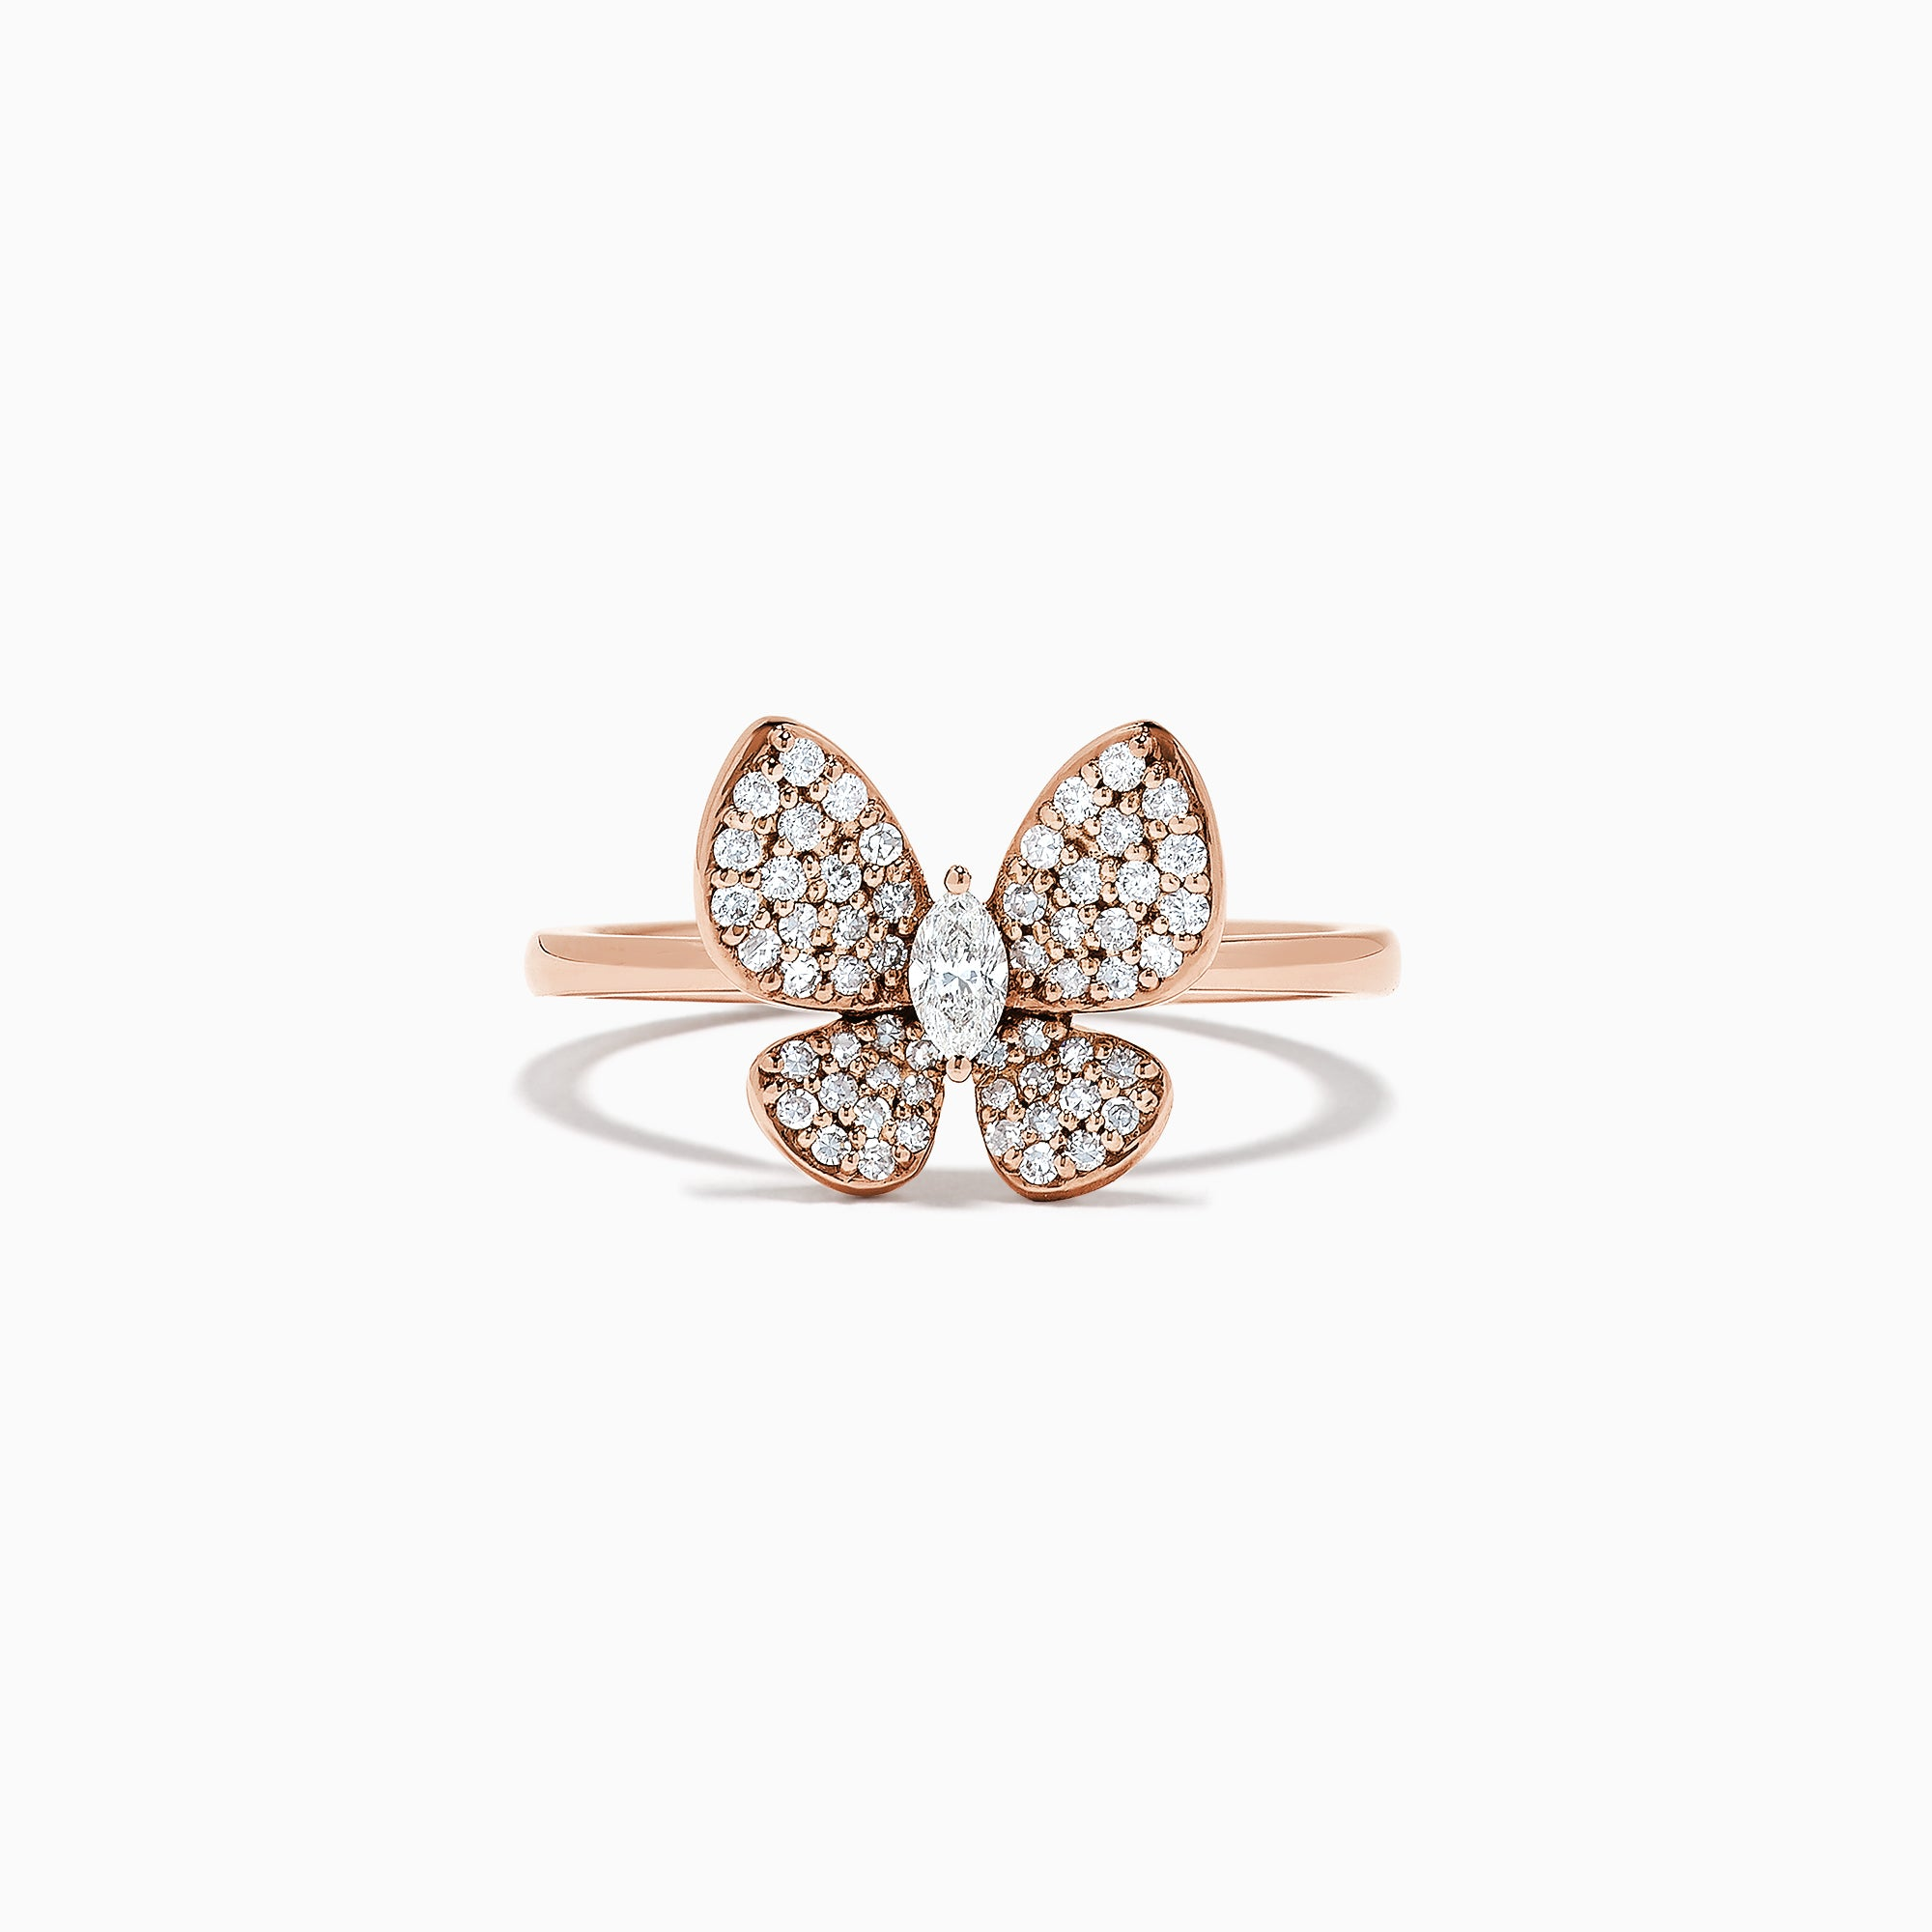 3a0feaa2119c2 Effy Nature 14K Rose Gold Diamond Butterfly Ring, 0.34 TCW ...